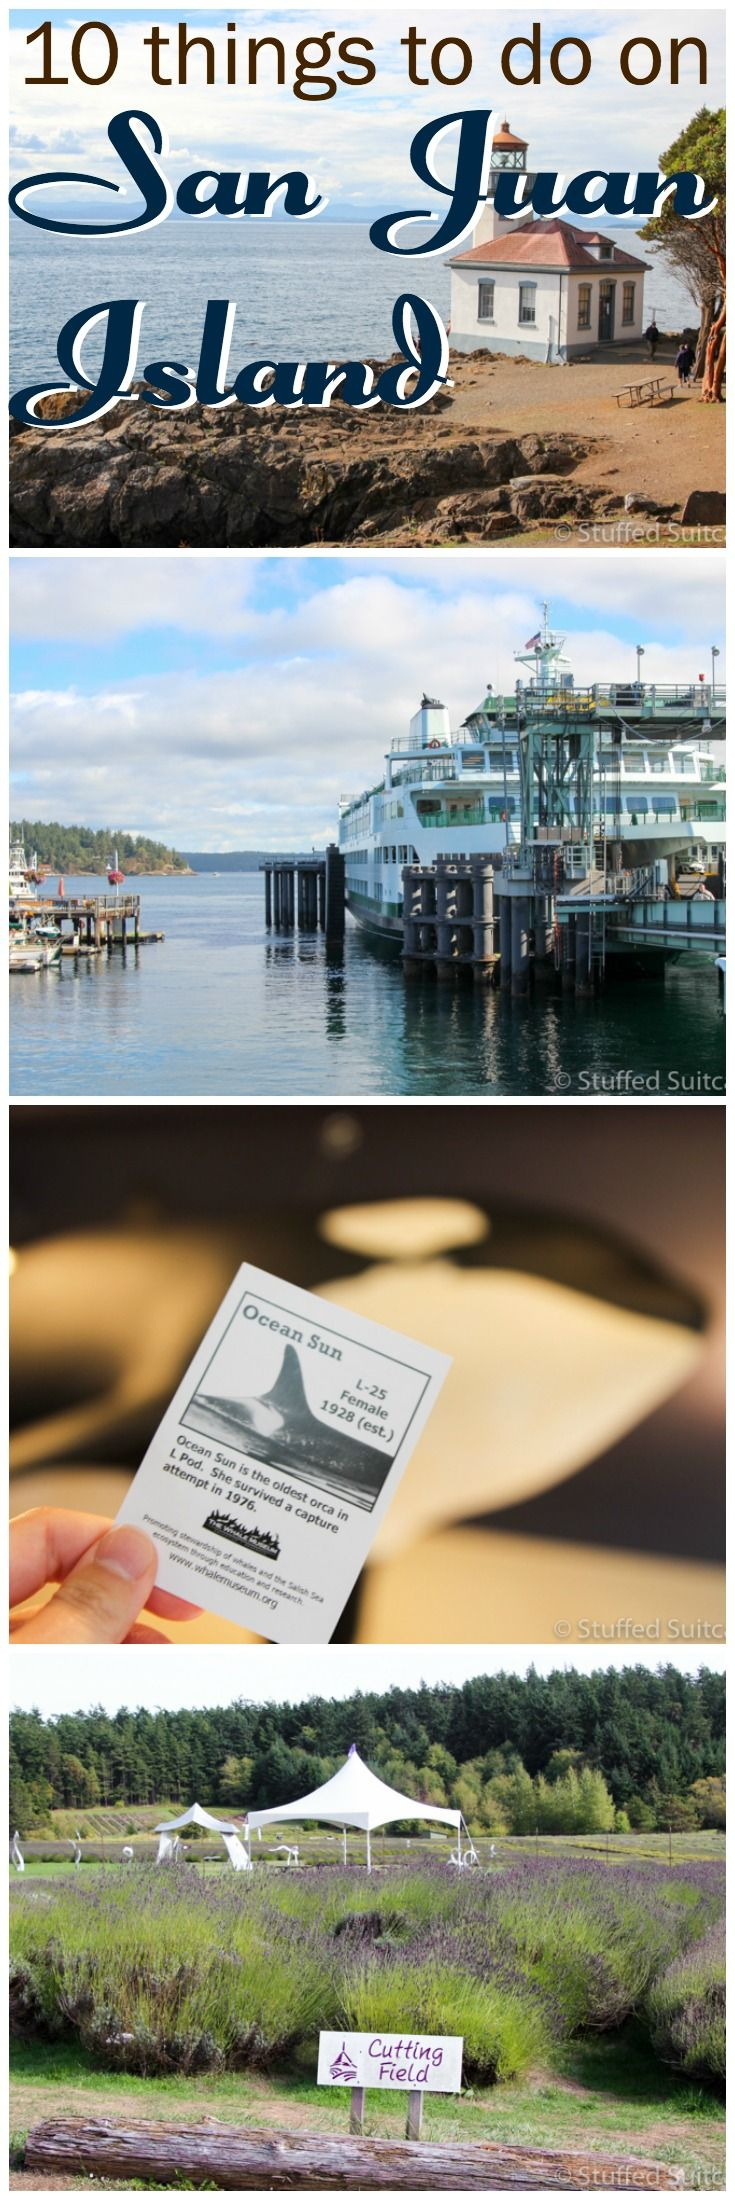 If you're taking a vacation to the west coast, be sure to plan a visit to the islands - San Juan Island is charming and full of activities perfect for family travel or adventure travel.